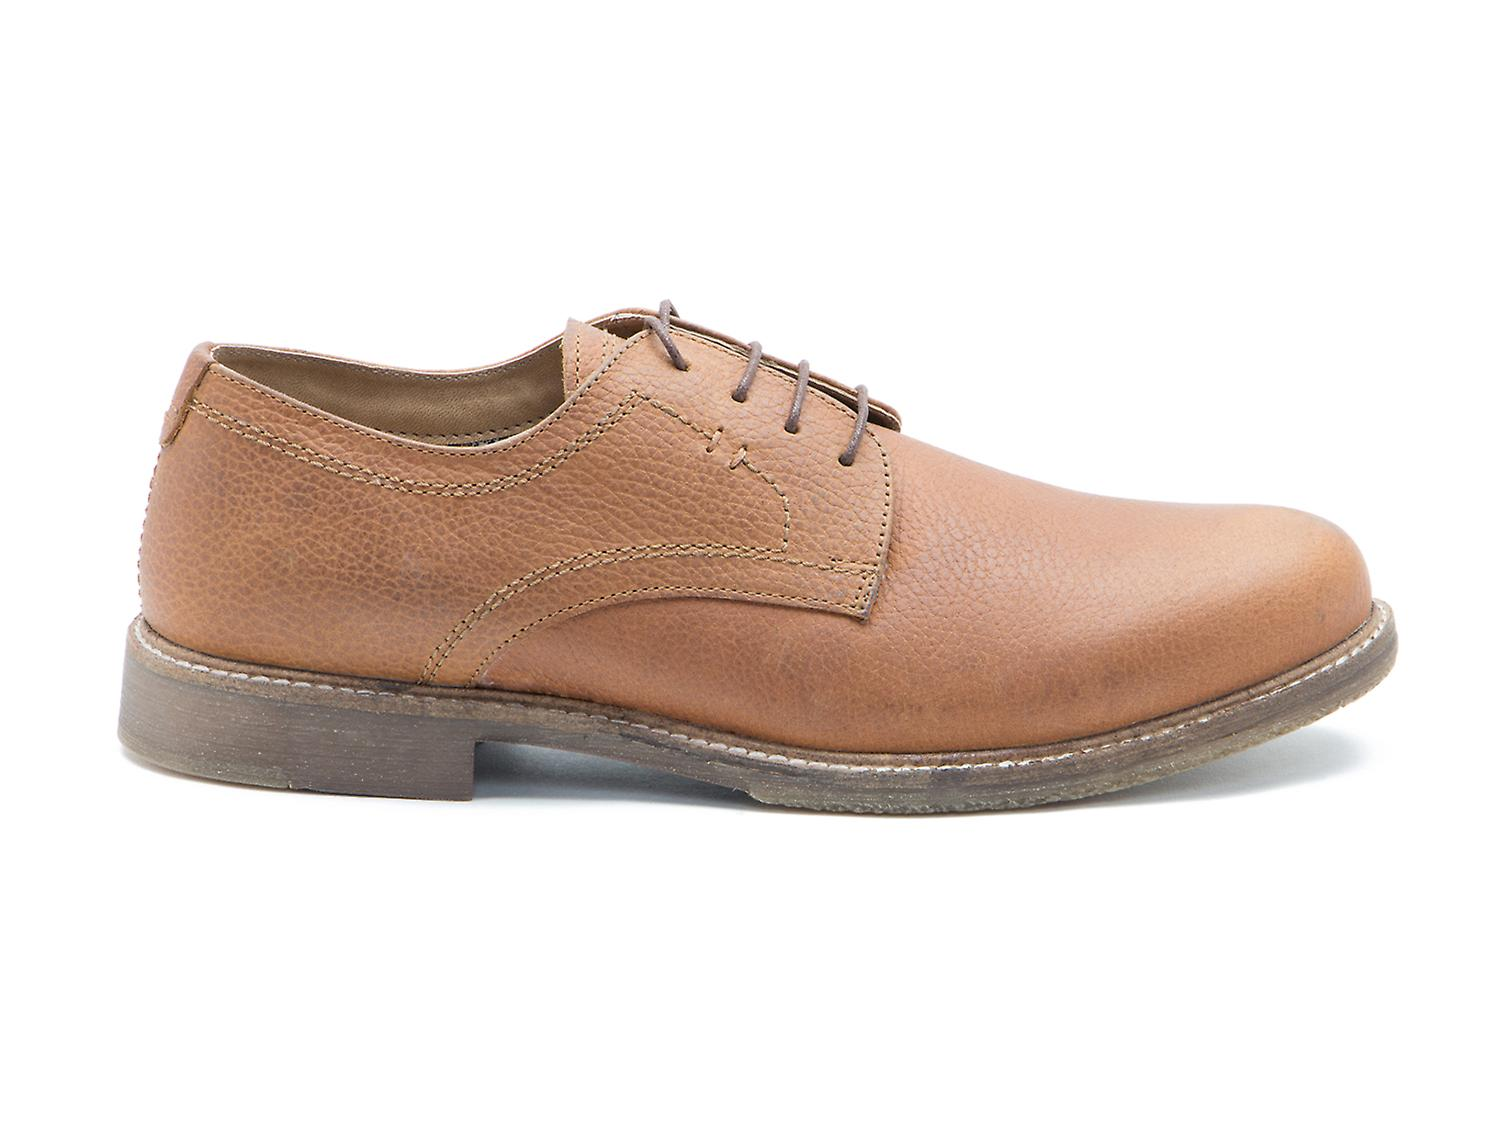 Mens Marlow Derbys Redtape With Paypal Cheap Online jPFr26